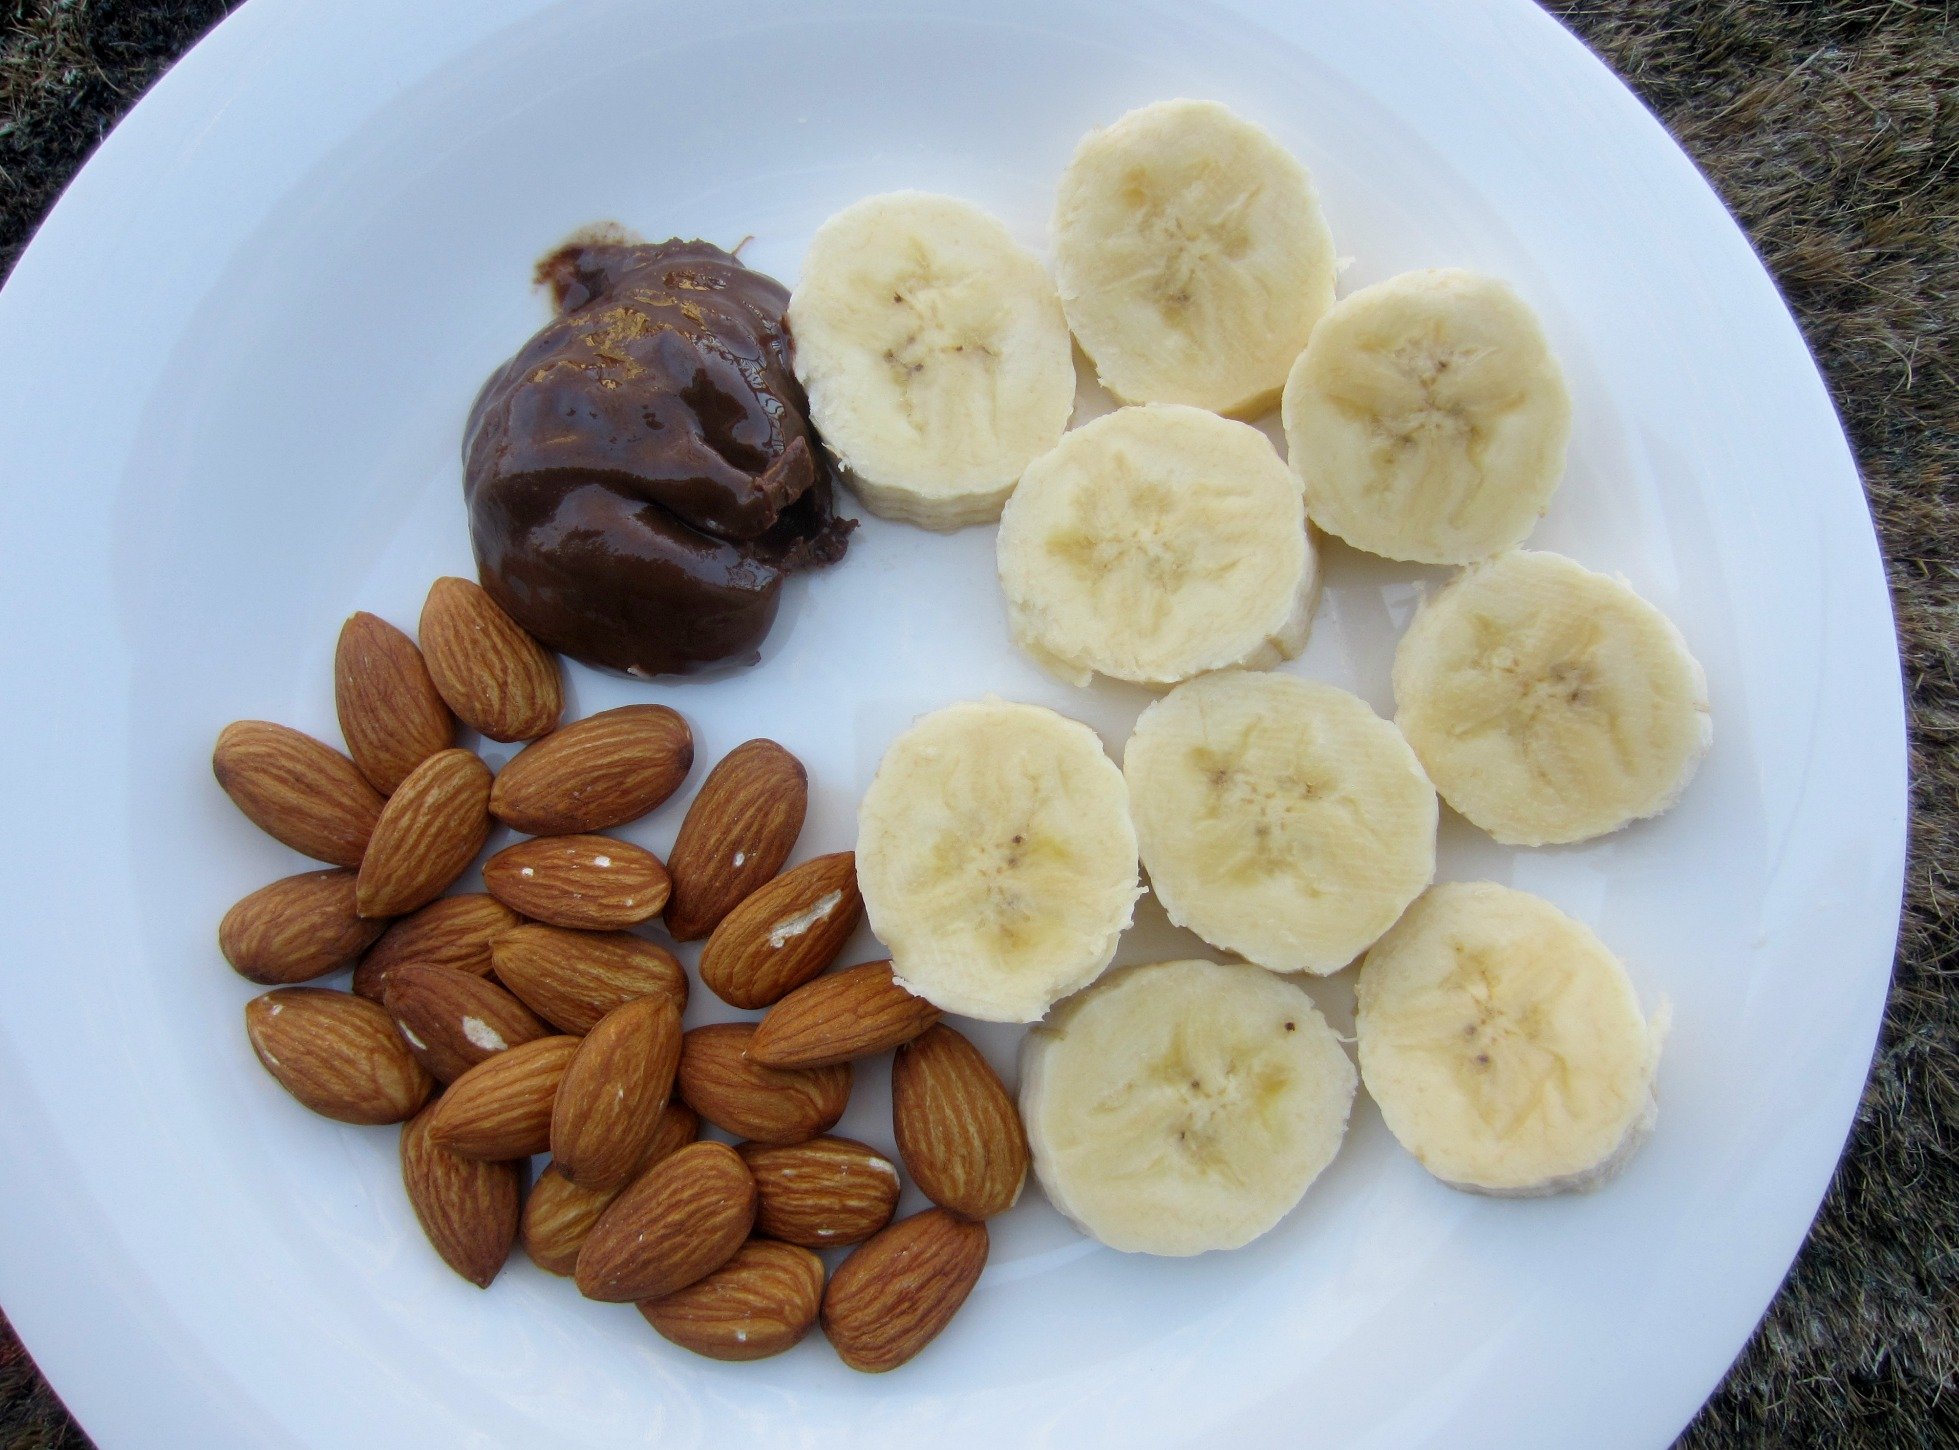 power snack before a run